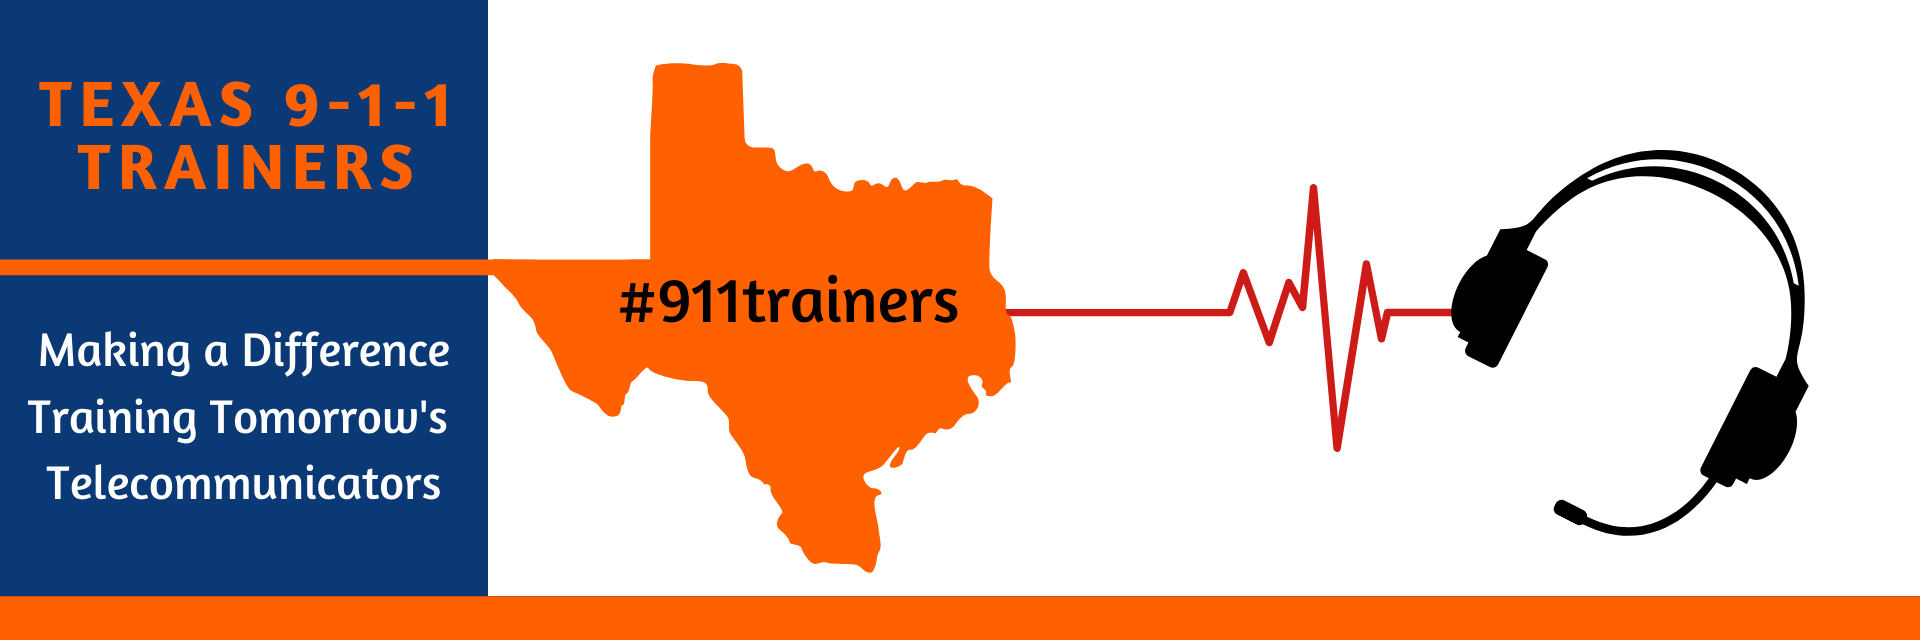 Texas 9-1-1 Trainers